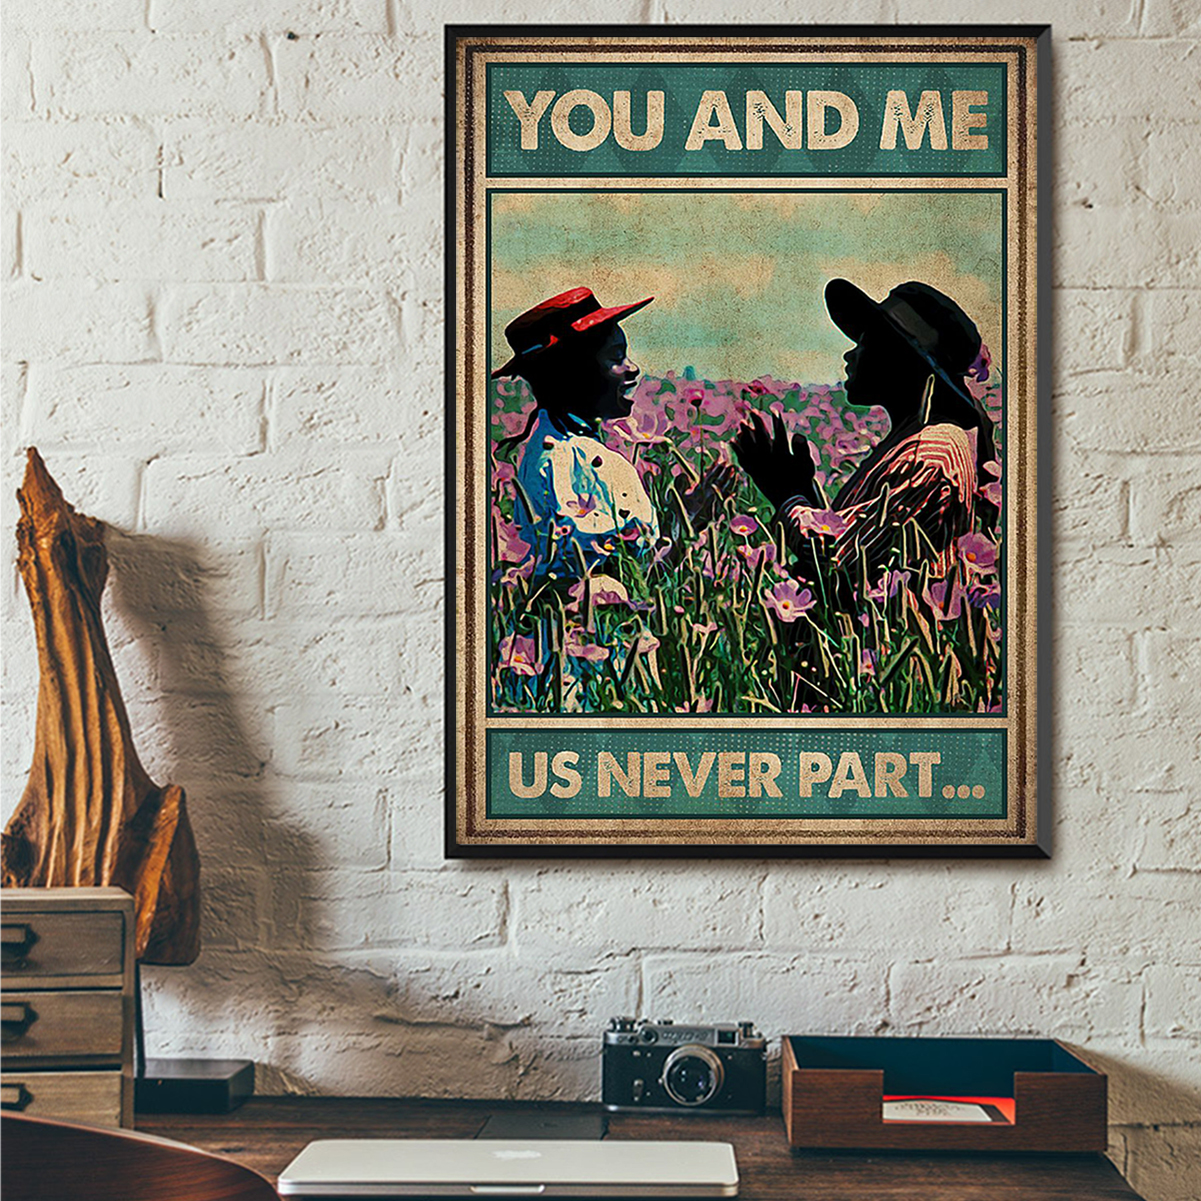 You and me us never part poster A3